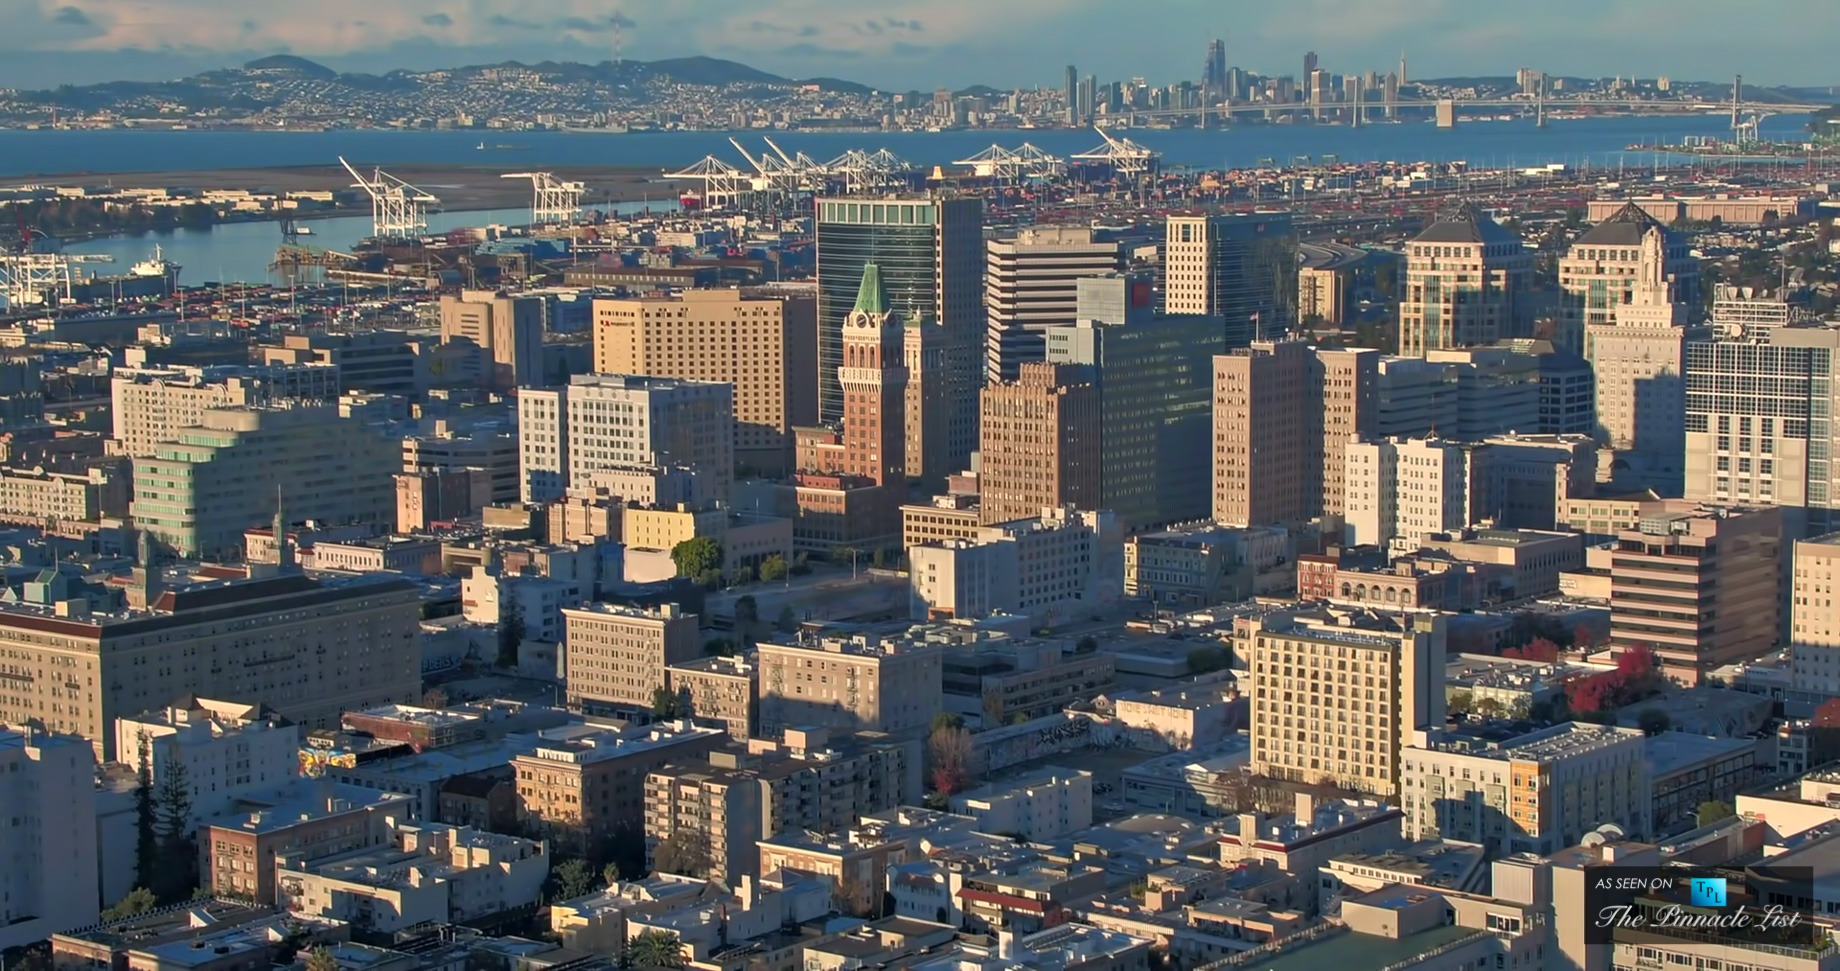 Oakland, CA - Real Estate in the United States - Top 5 Most Expensive Regions to Live in America